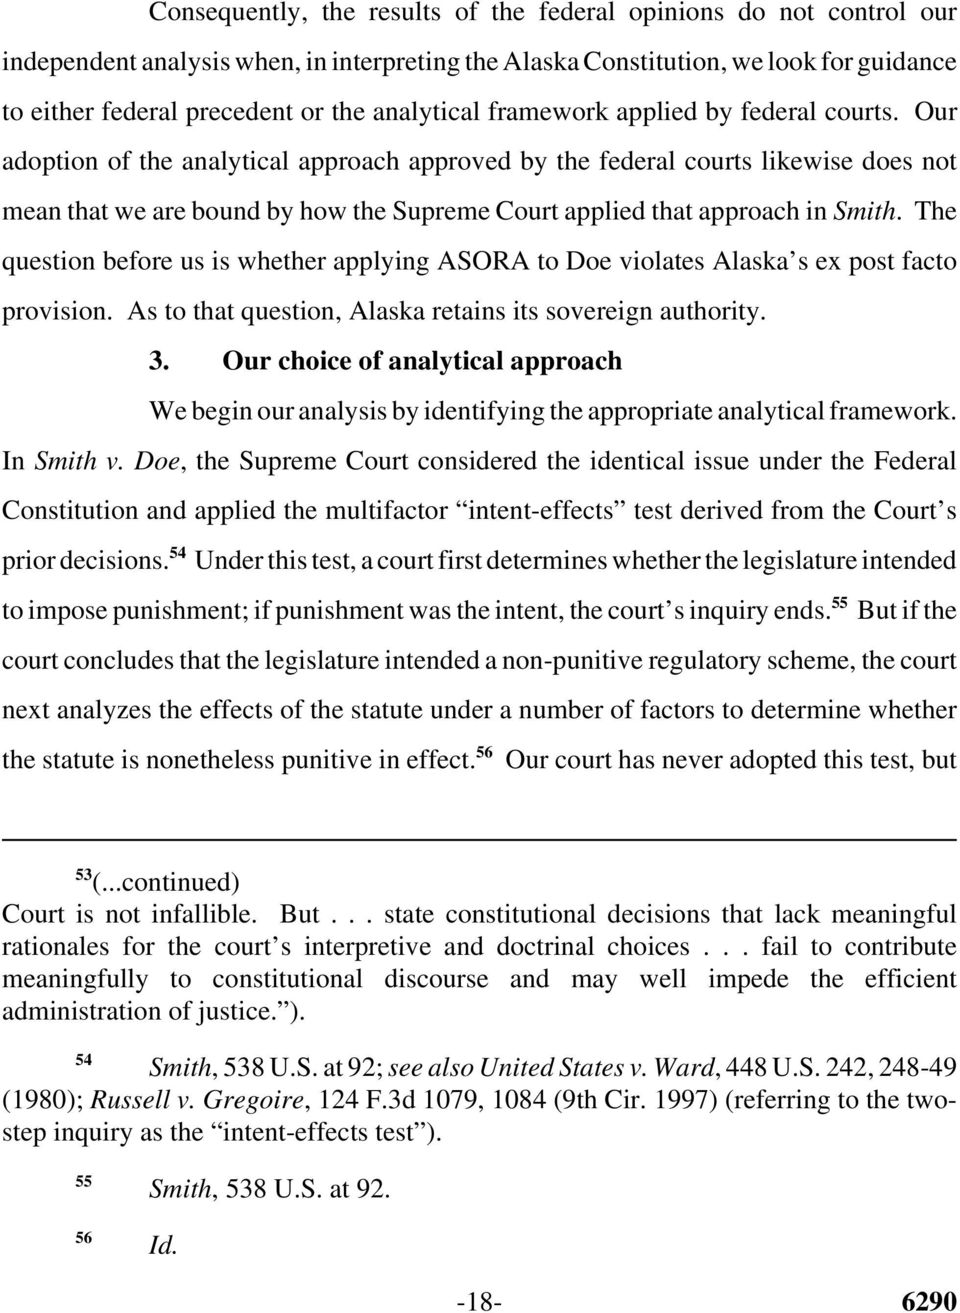 Our adoption of the analytical approach approved by the federal courts likewise does not mean that we are bound by how the Supreme Court applied that approach in Smith.